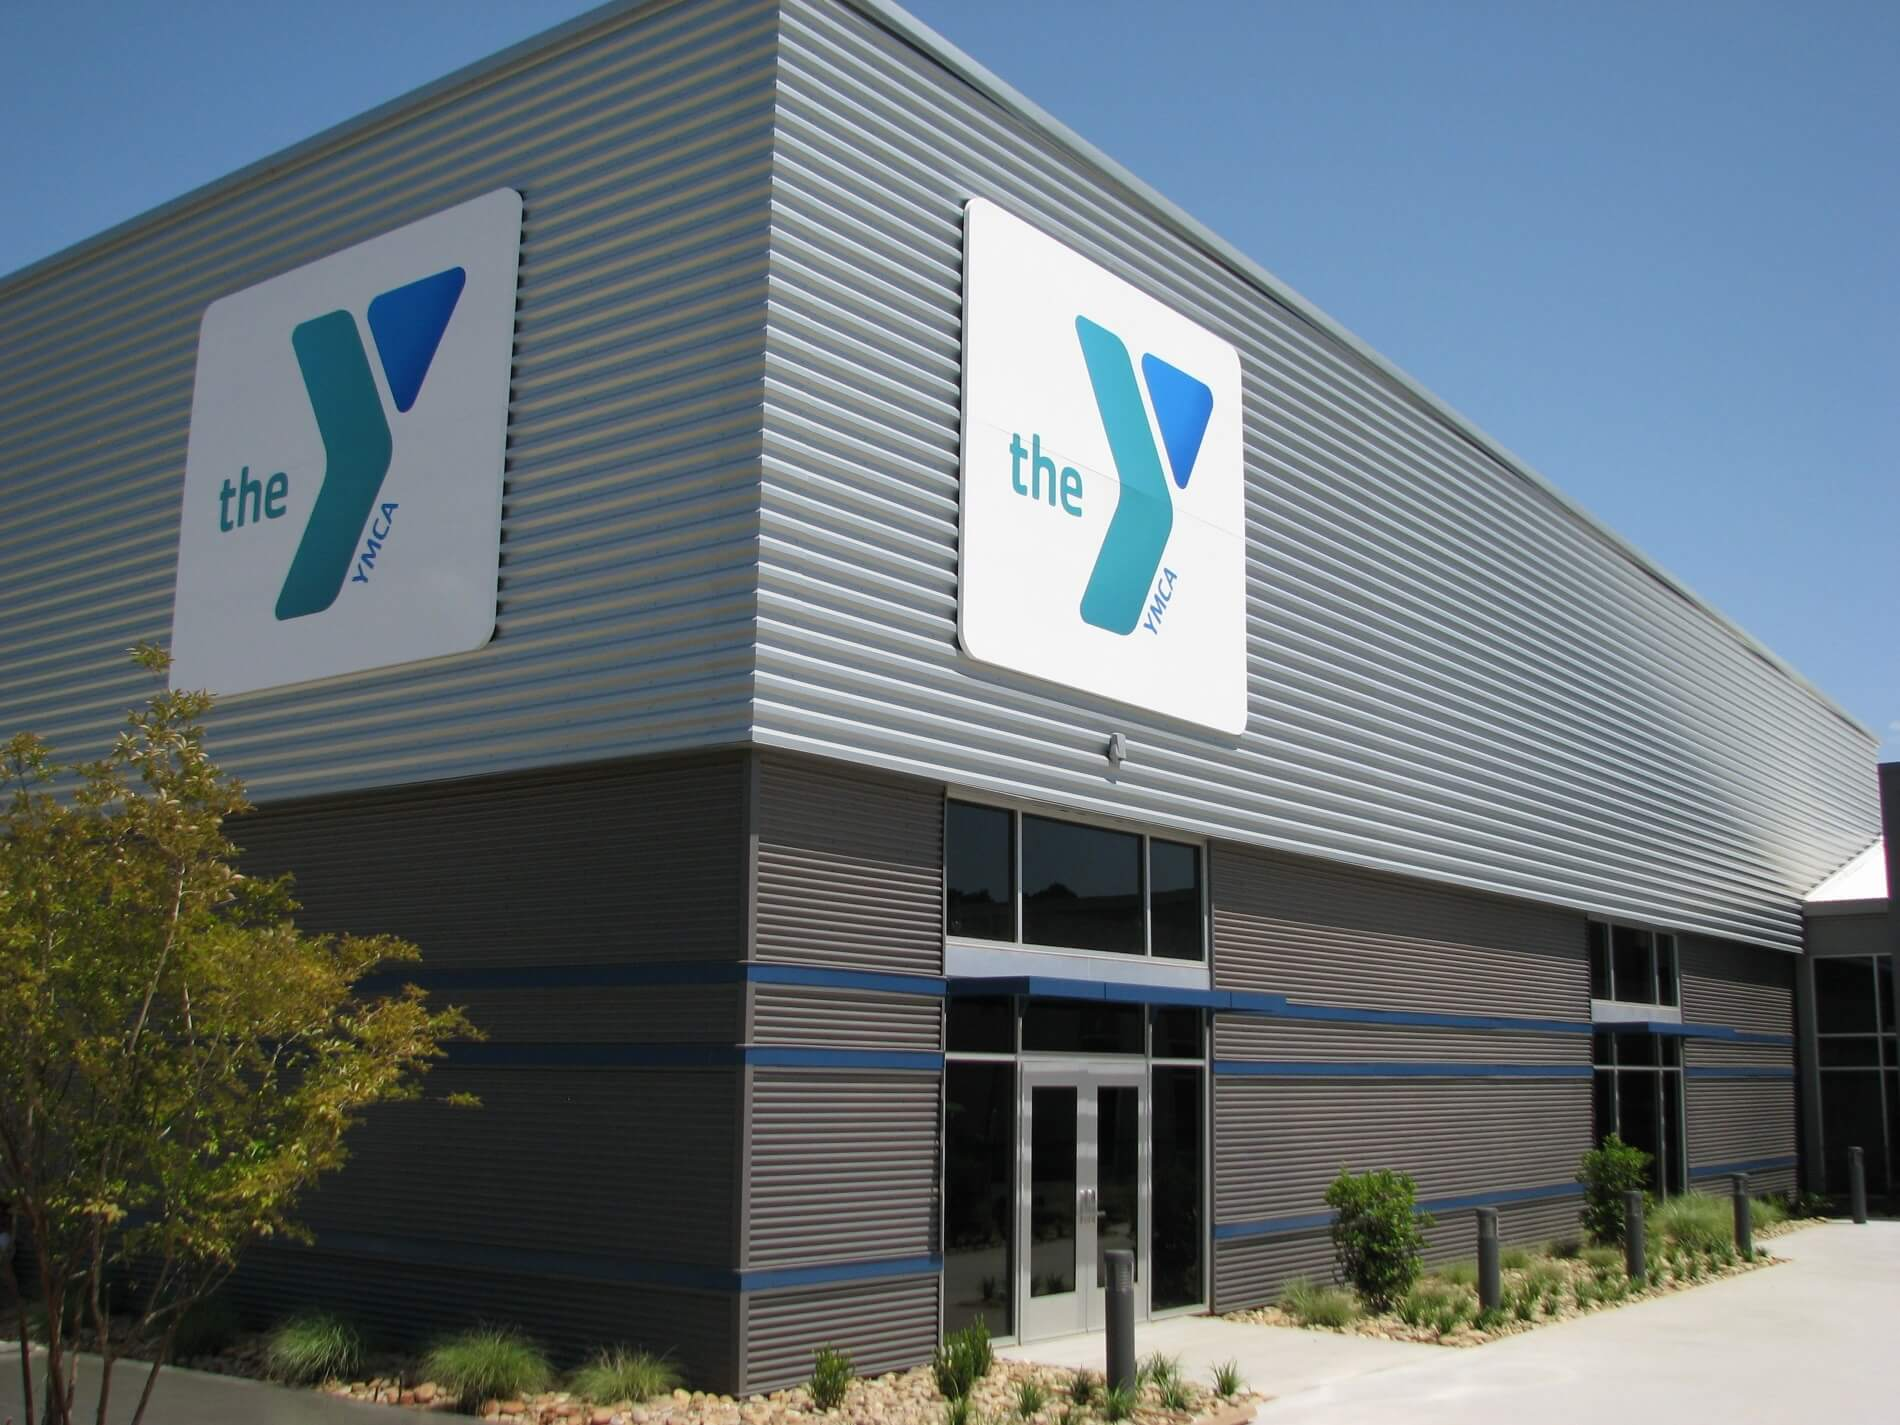 'Endless options' by McElroy Metal provide durable aesthetic for new YMCA